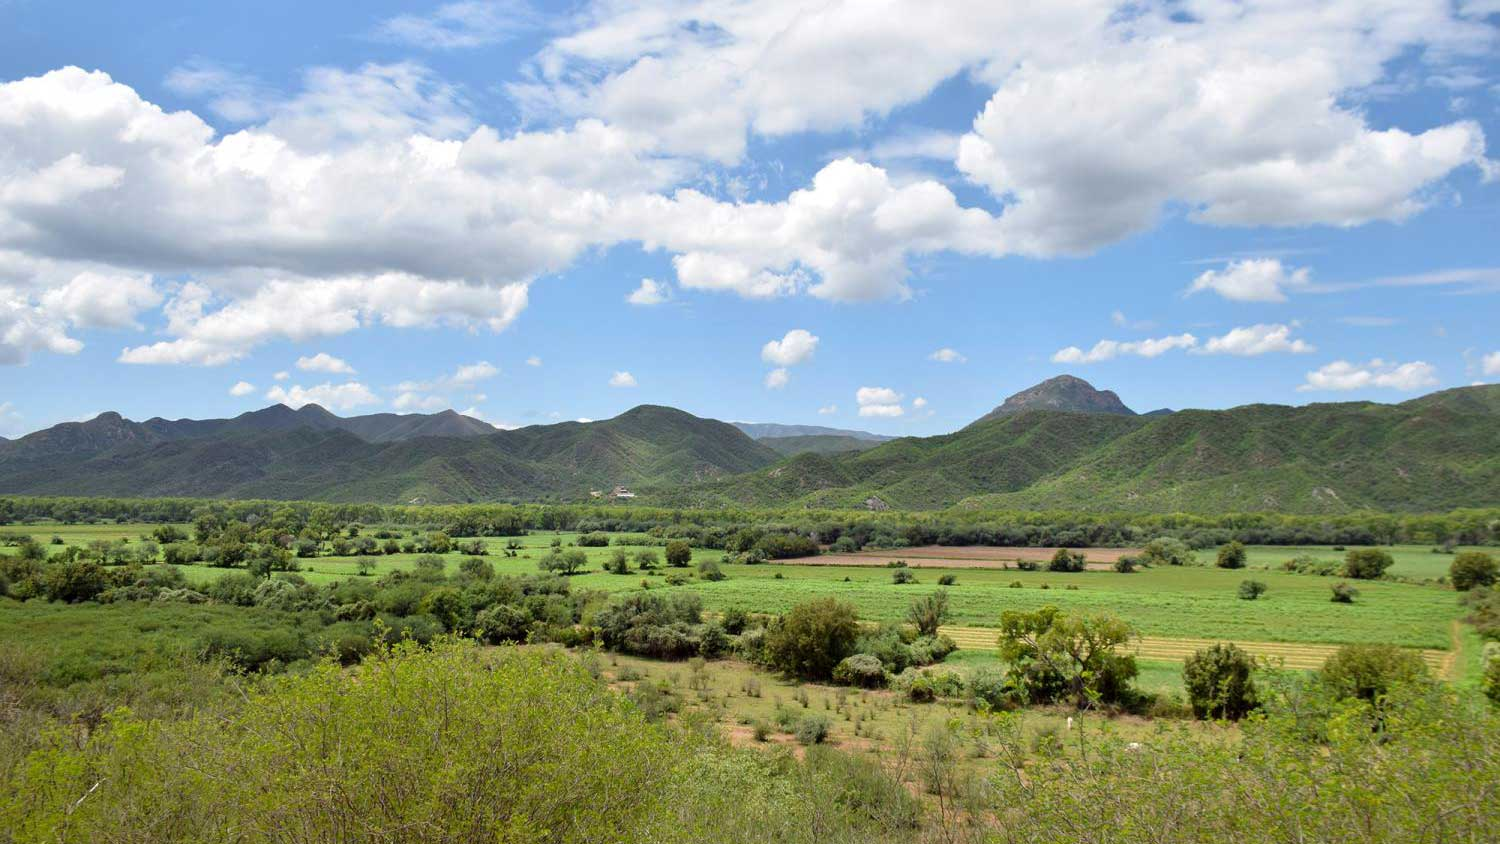 A view of the Rio Sonora valley from a hillside in Baviácora, Sonora, on July 30, 2019.